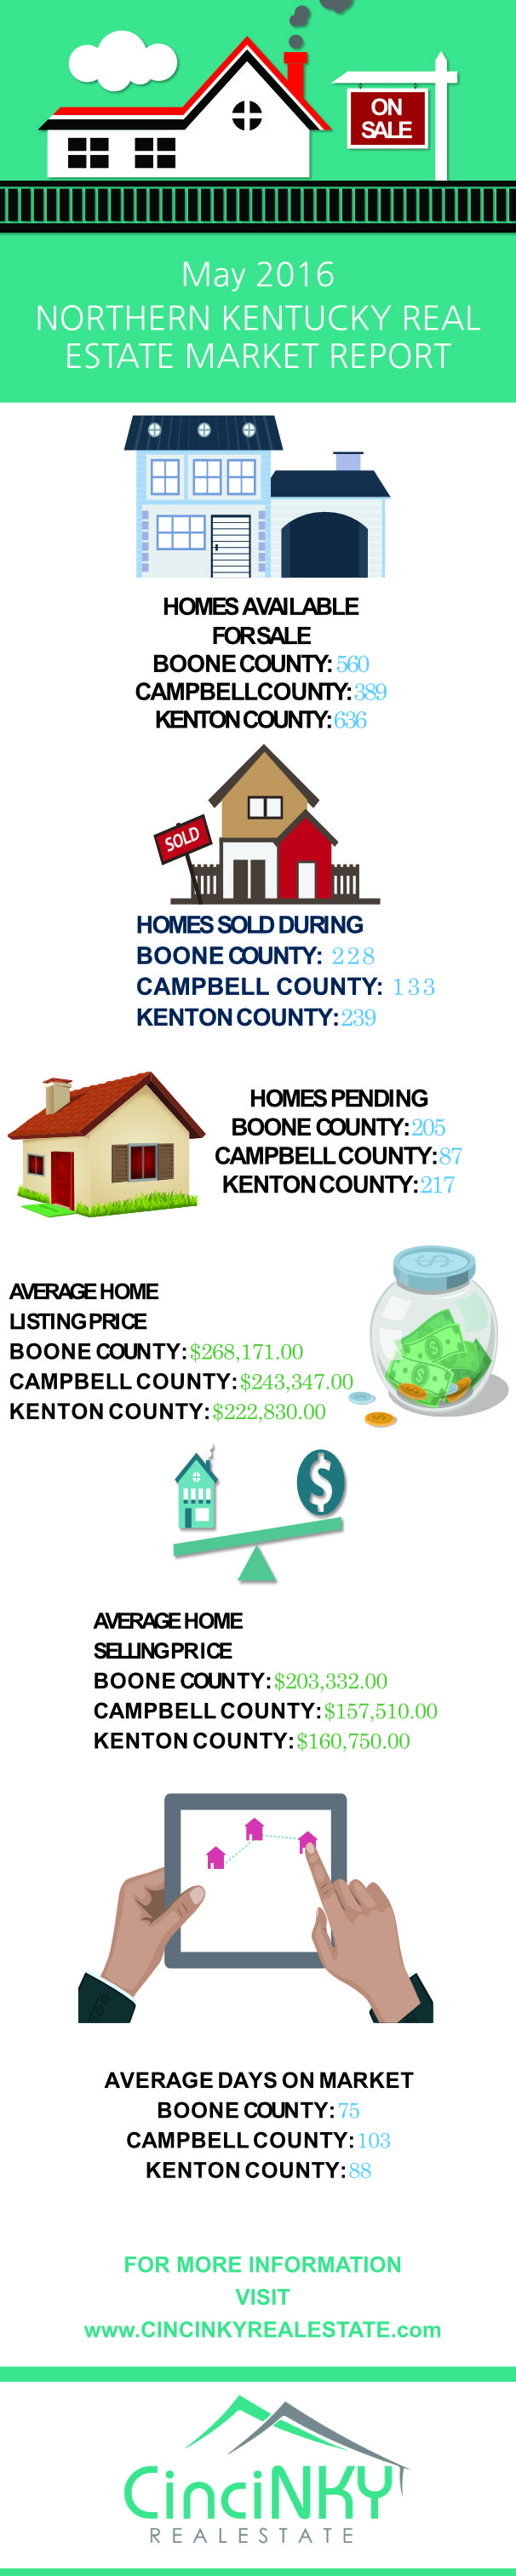 may 2016 northern kentucky real estate market report statistics infographic